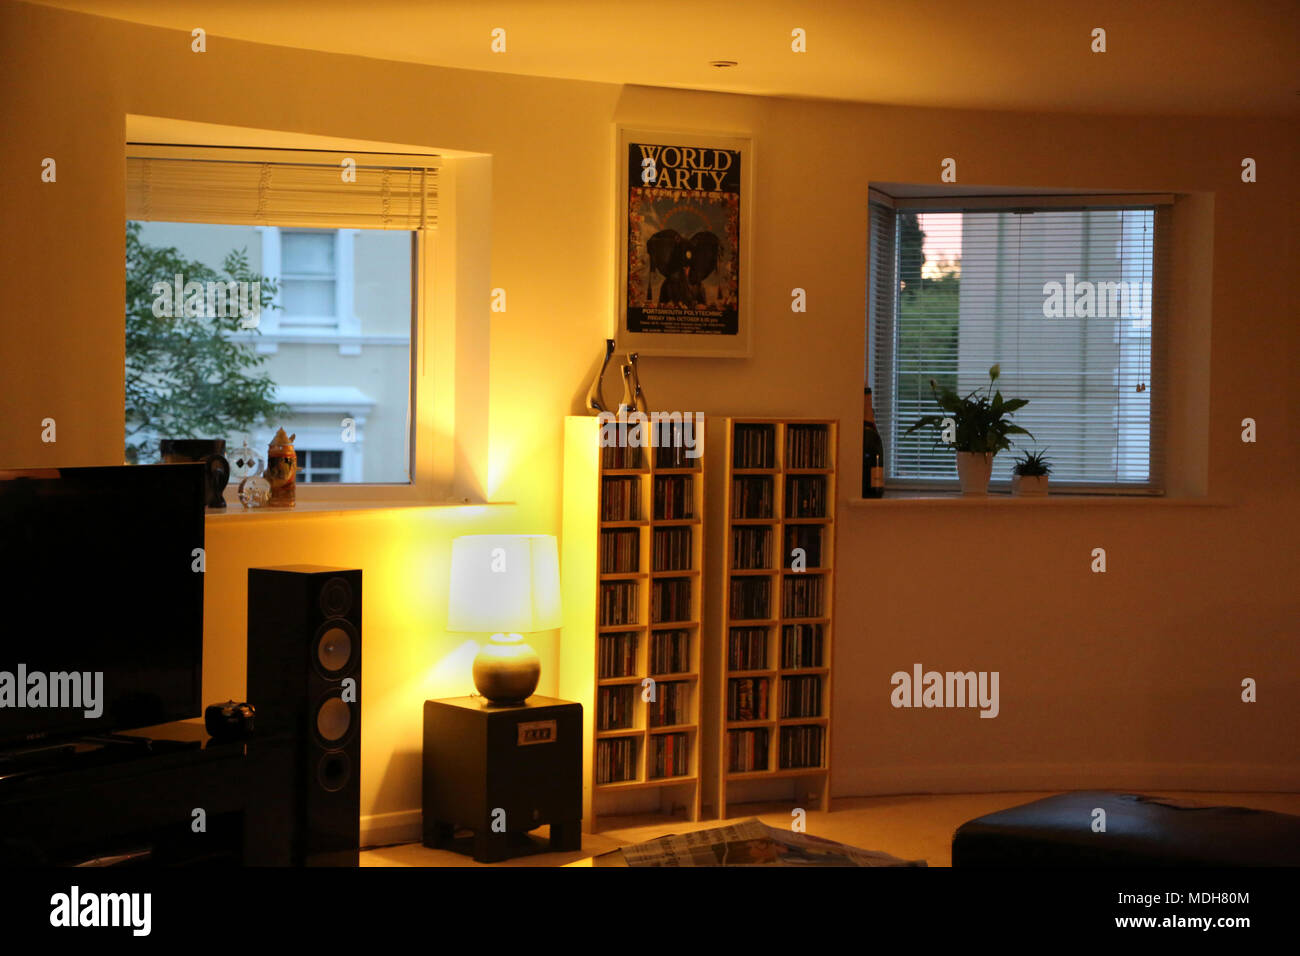 Open Plan Living Room With CD's On Shelves In the Evening Cheltenham Gloucestershire England - Stock Image